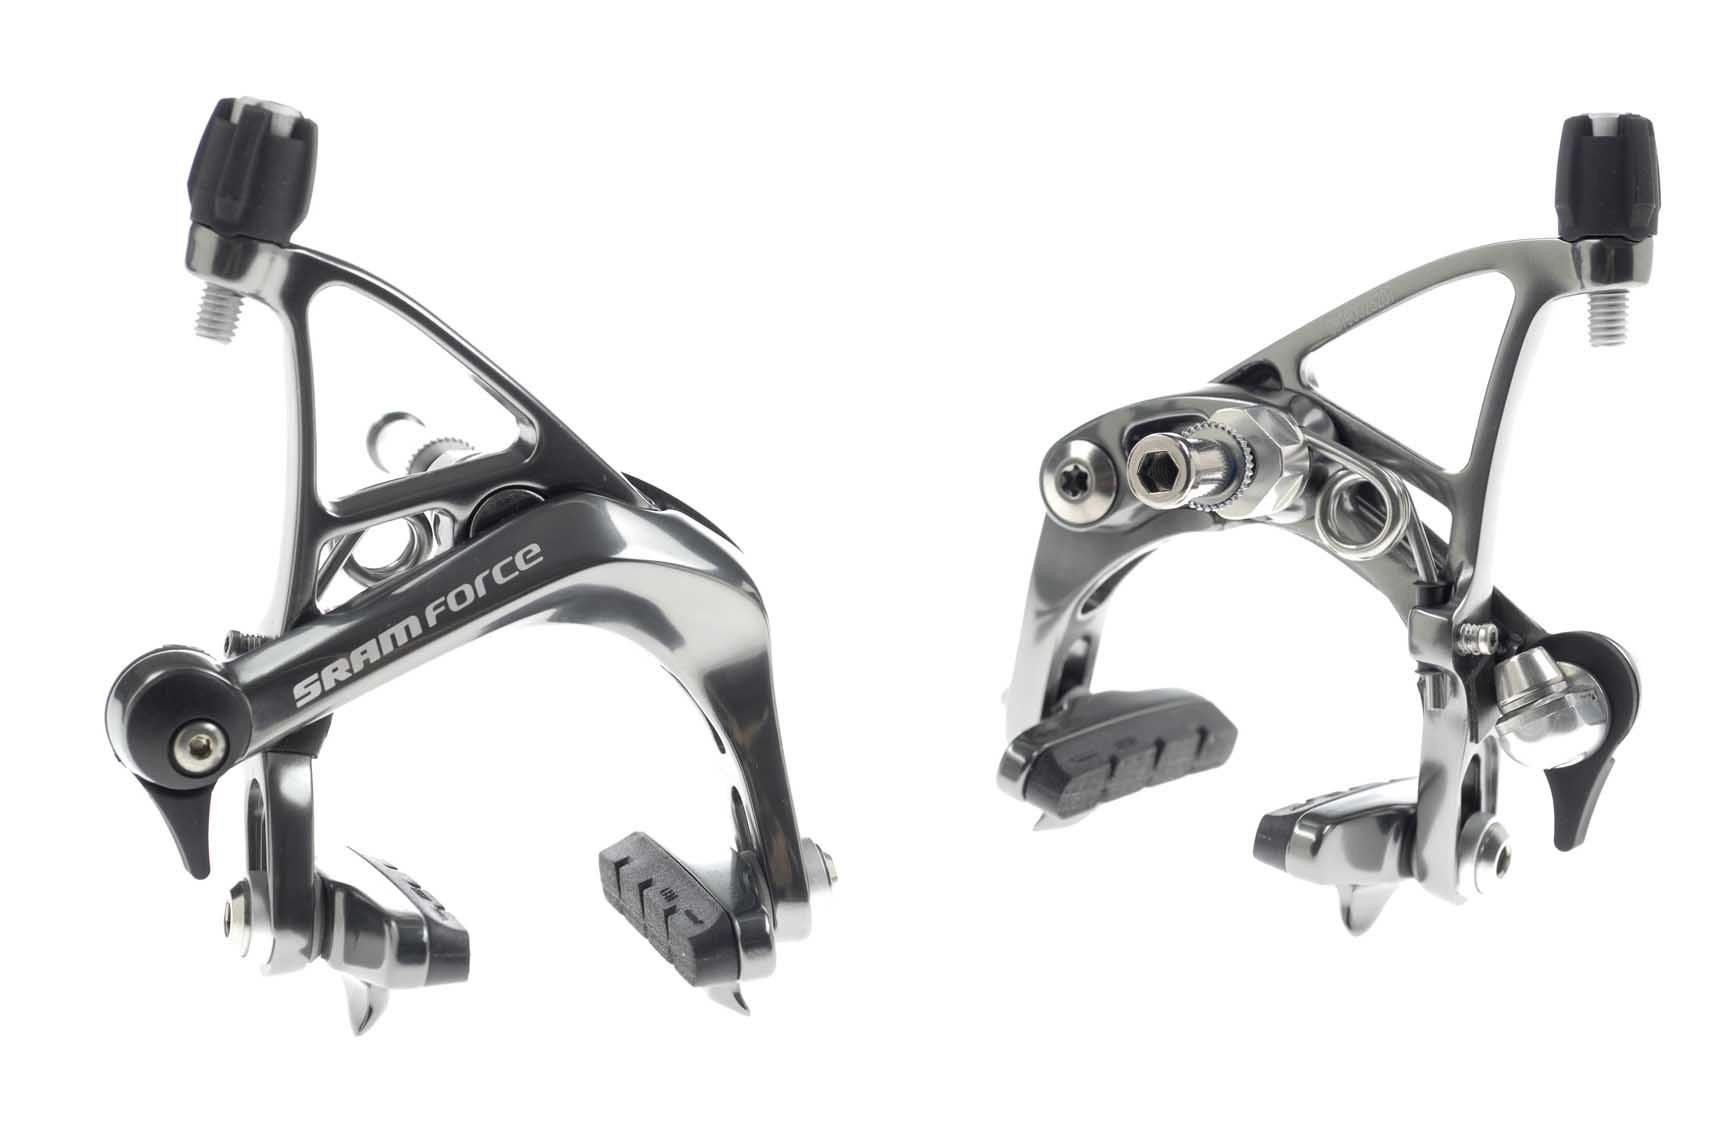 Sram Force Gruppo Redesigned For Upgrades Shifters